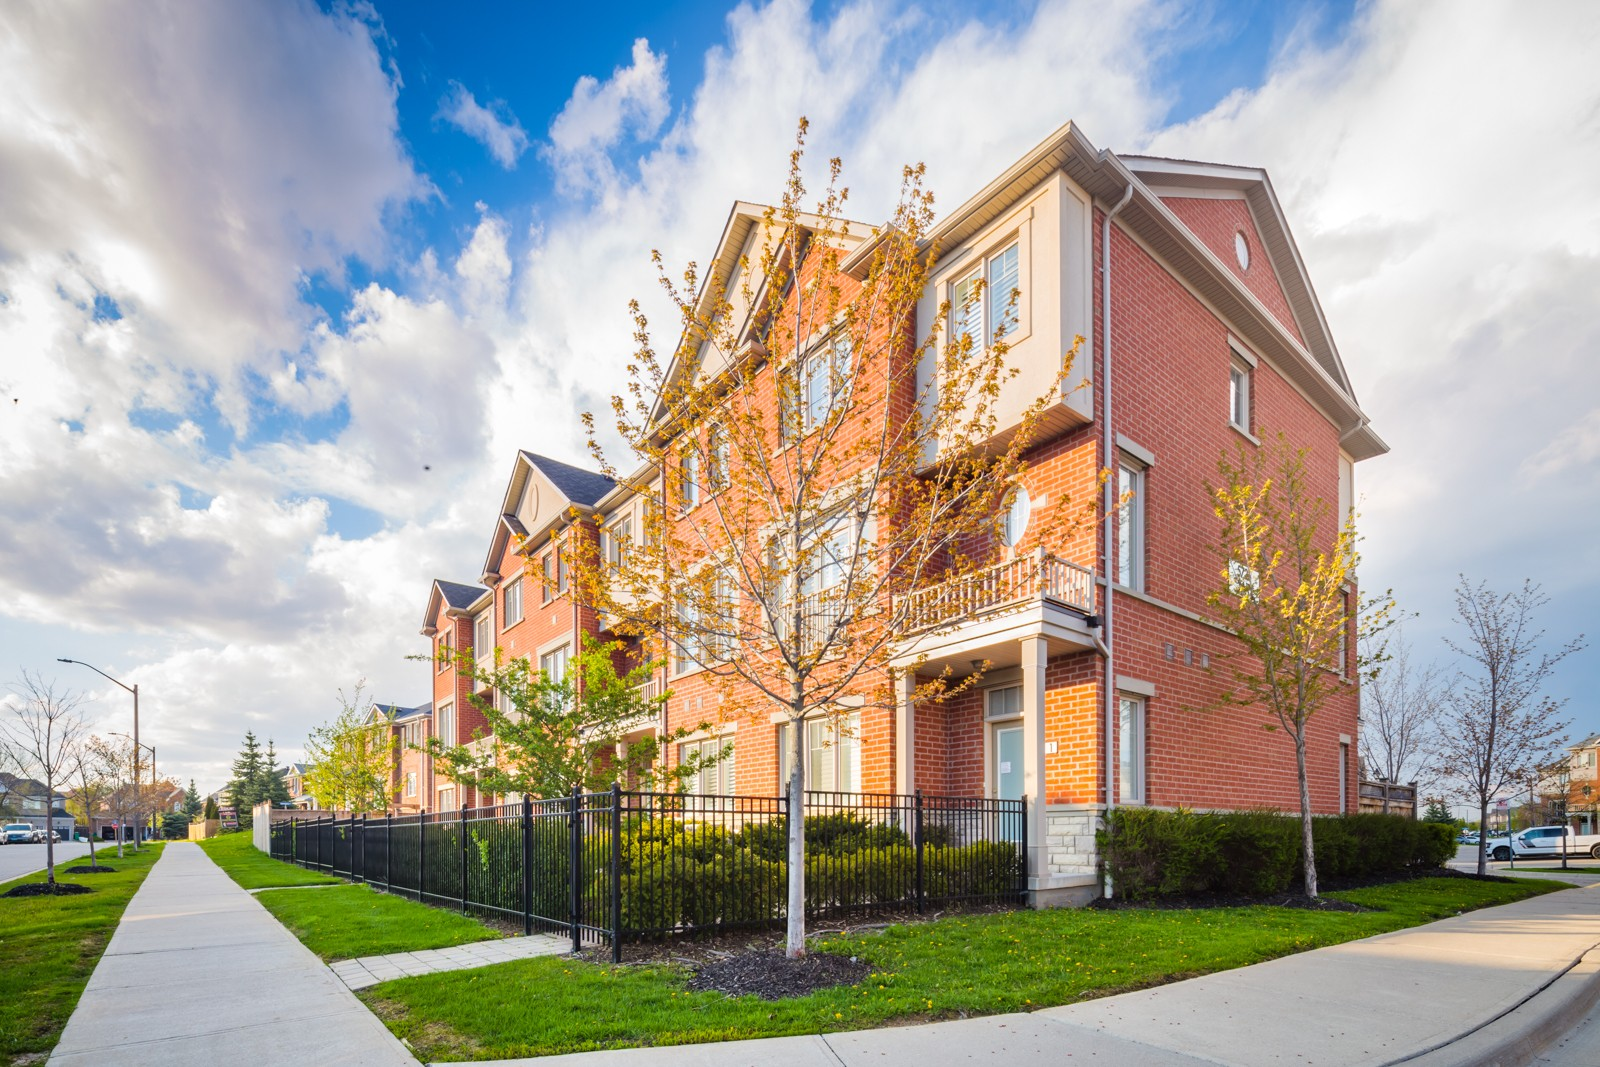 5725 Tosca Dr Townhouses at 5725 Tosca Dr, Mississauga 0